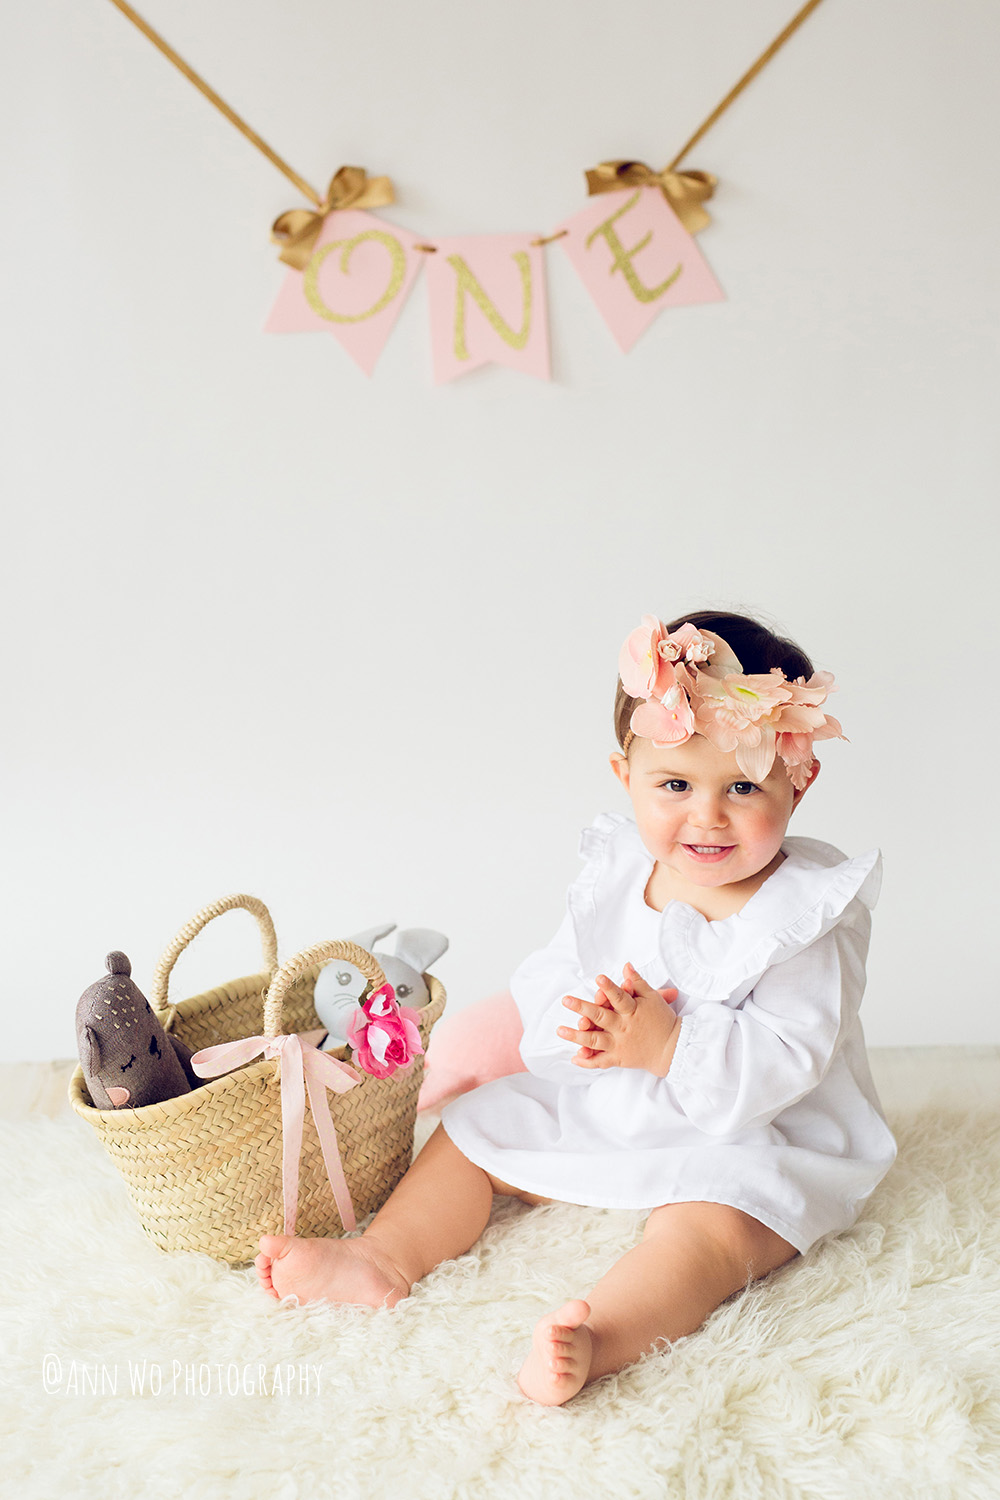 baby-photography-london-ann-wo-cake-smash-14.JPG